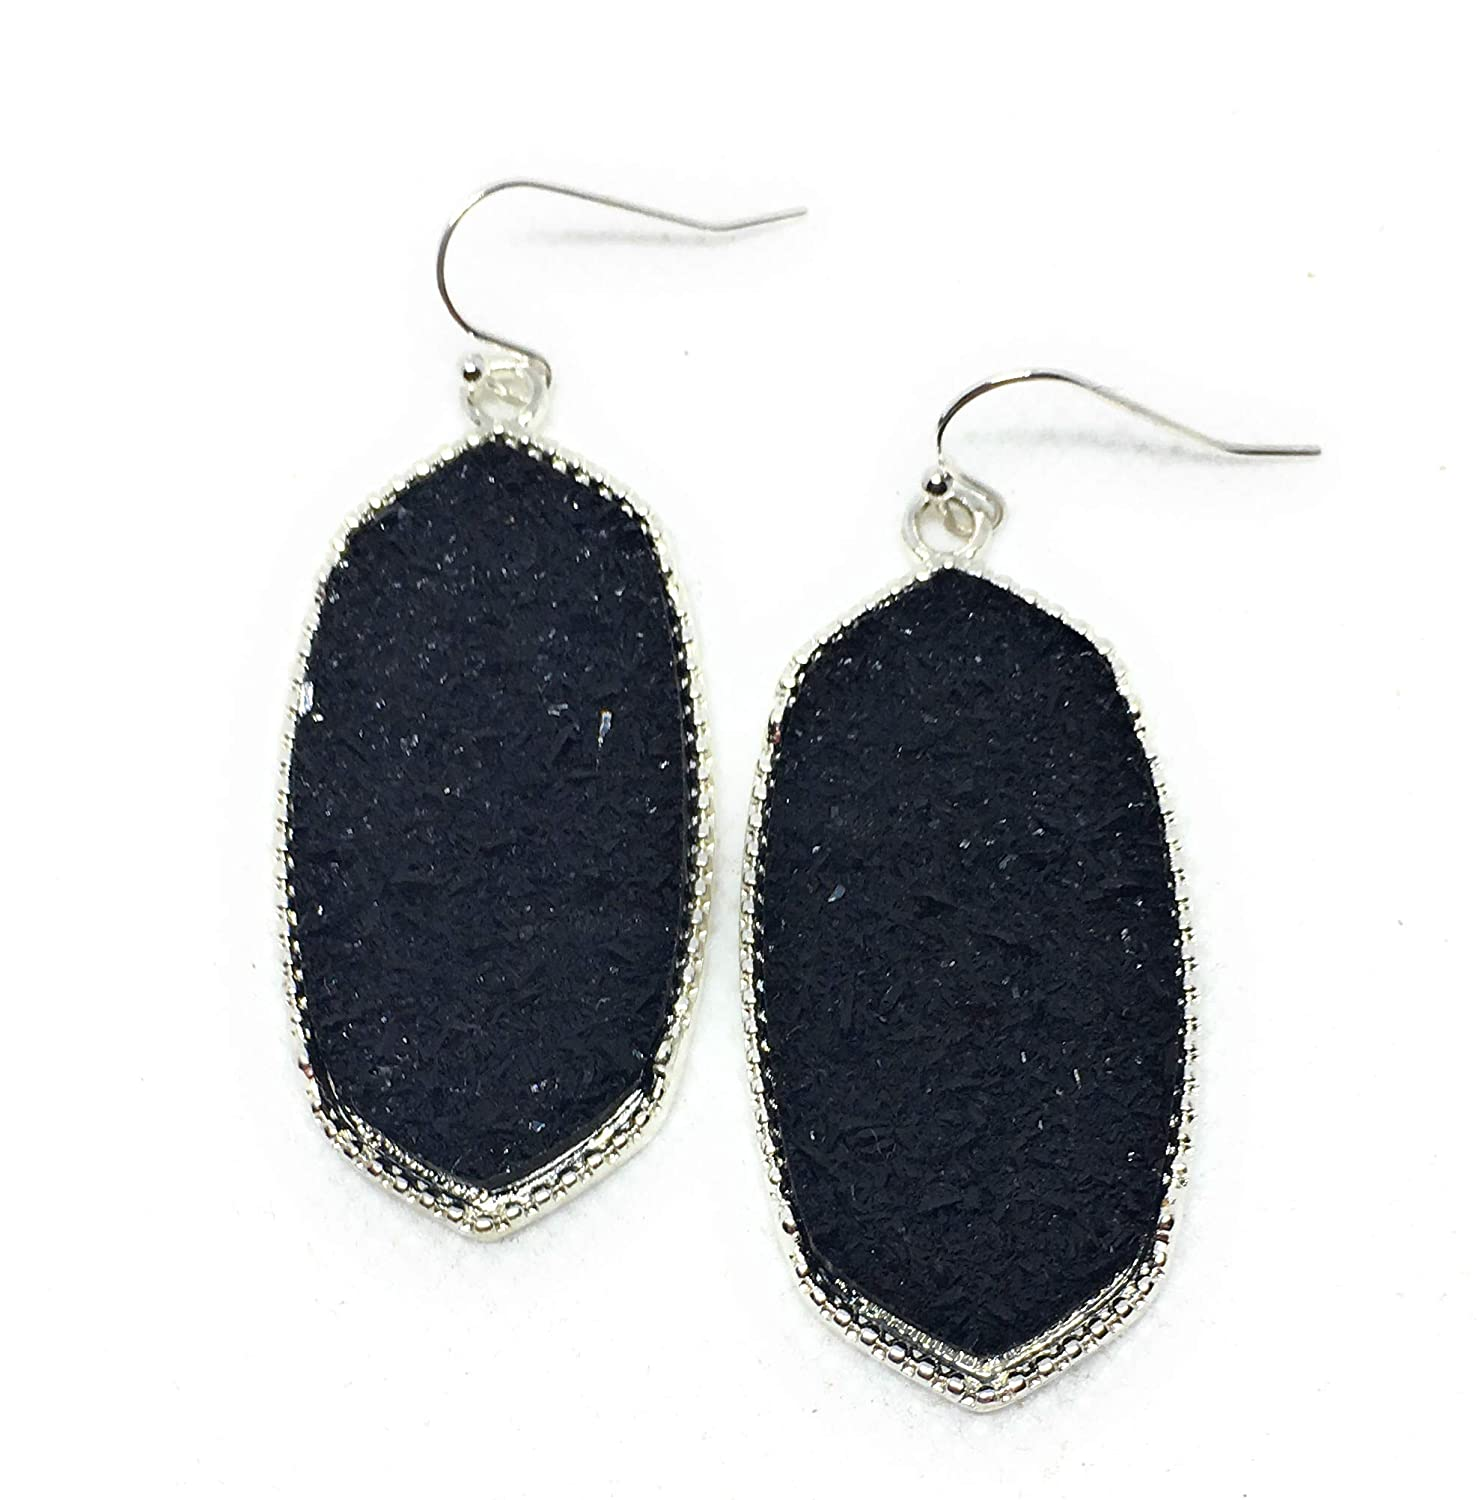 Inspired Fashion Jewelry Big Oval Drusy Earrings Black Onyx in Silver Metal Tone